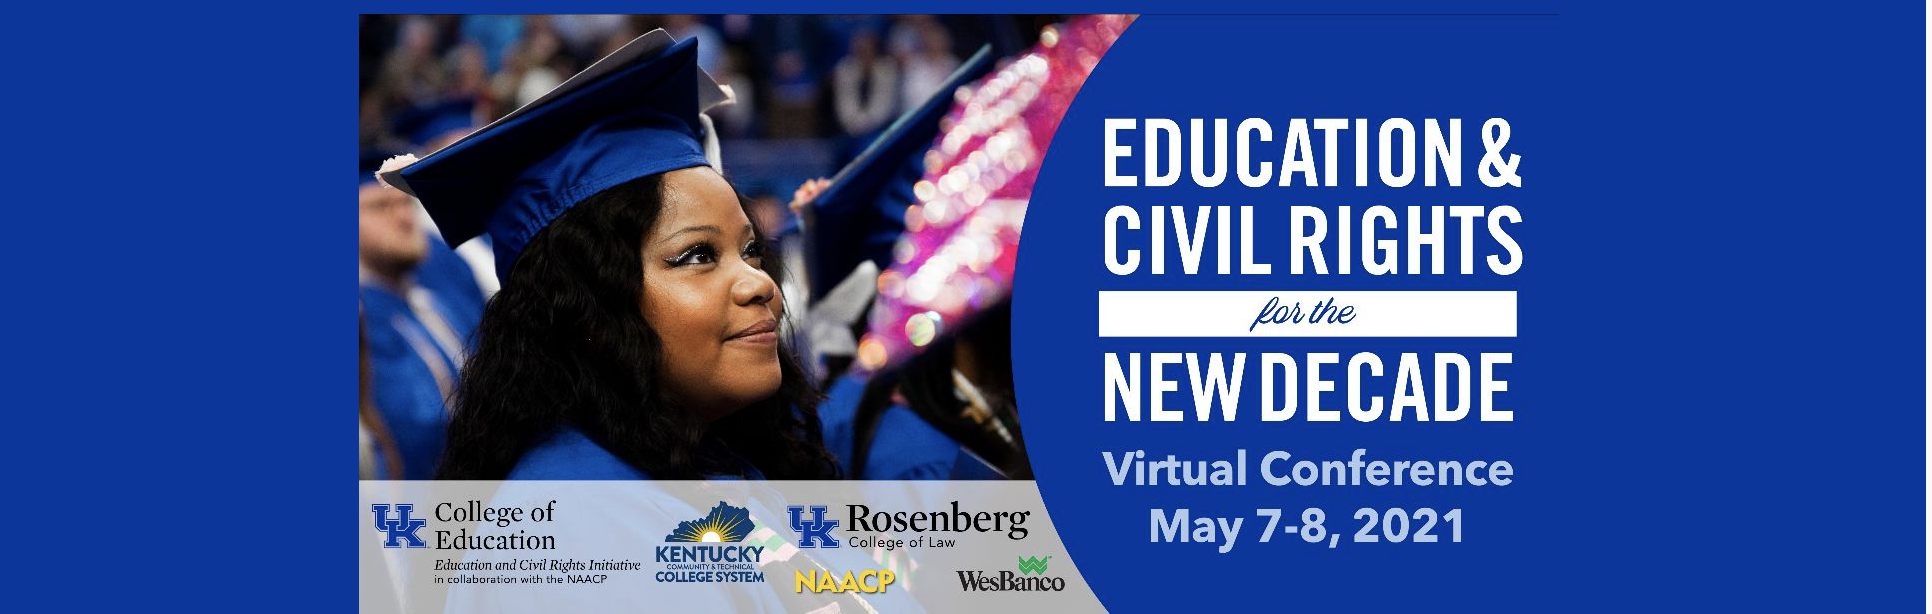 Can't-Miss  UK/NAACP Education & Civil Rights Initiative Virtual Conference